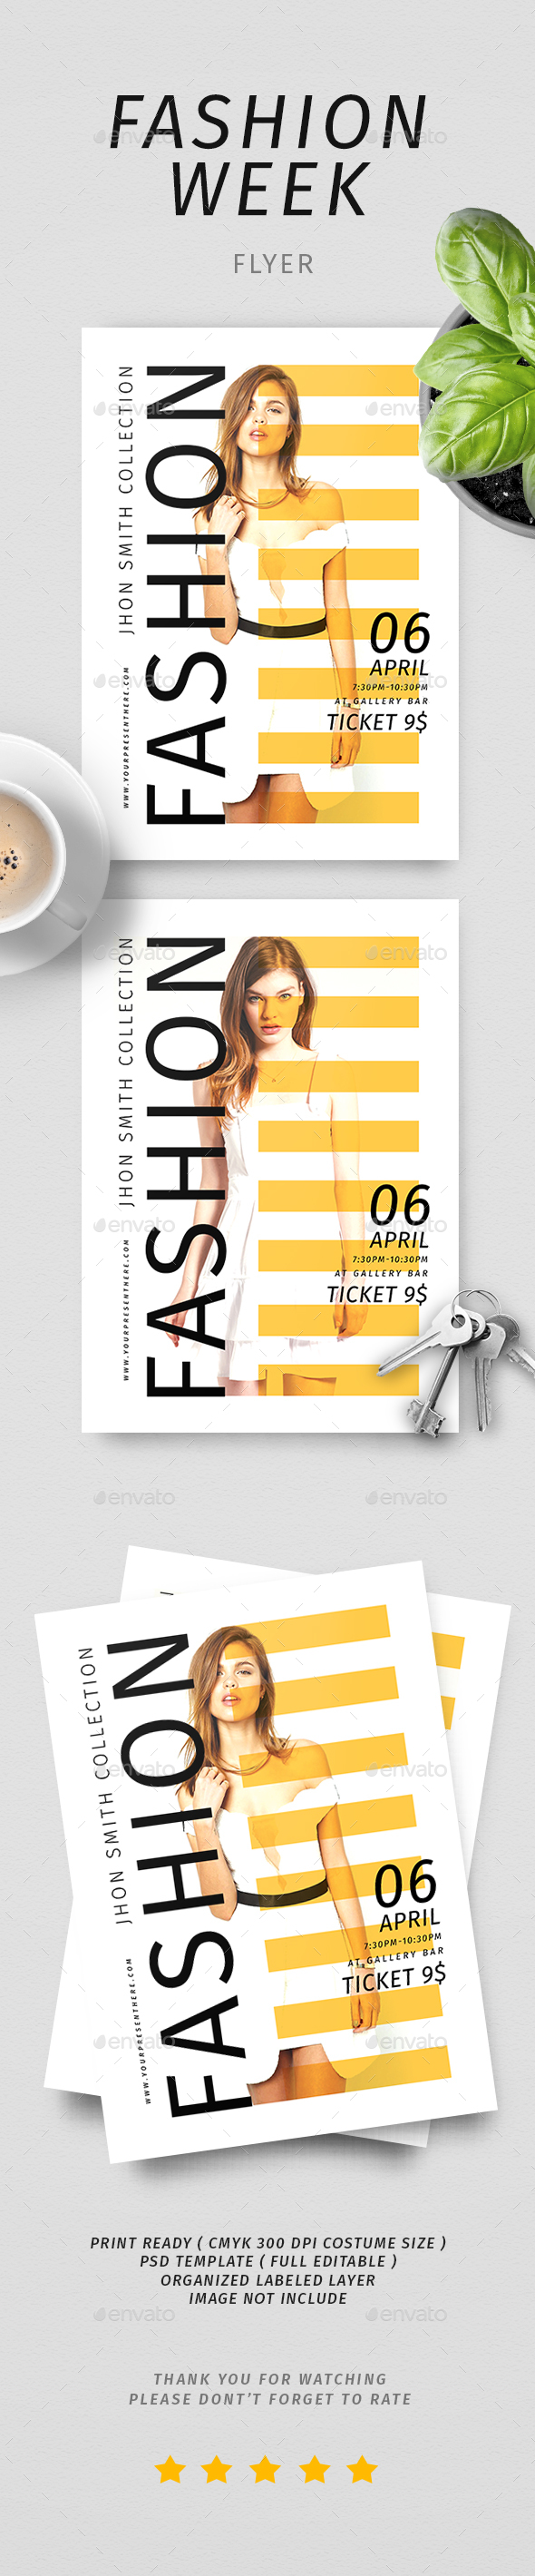 Fashion Week Flyer - Commerce Flyers